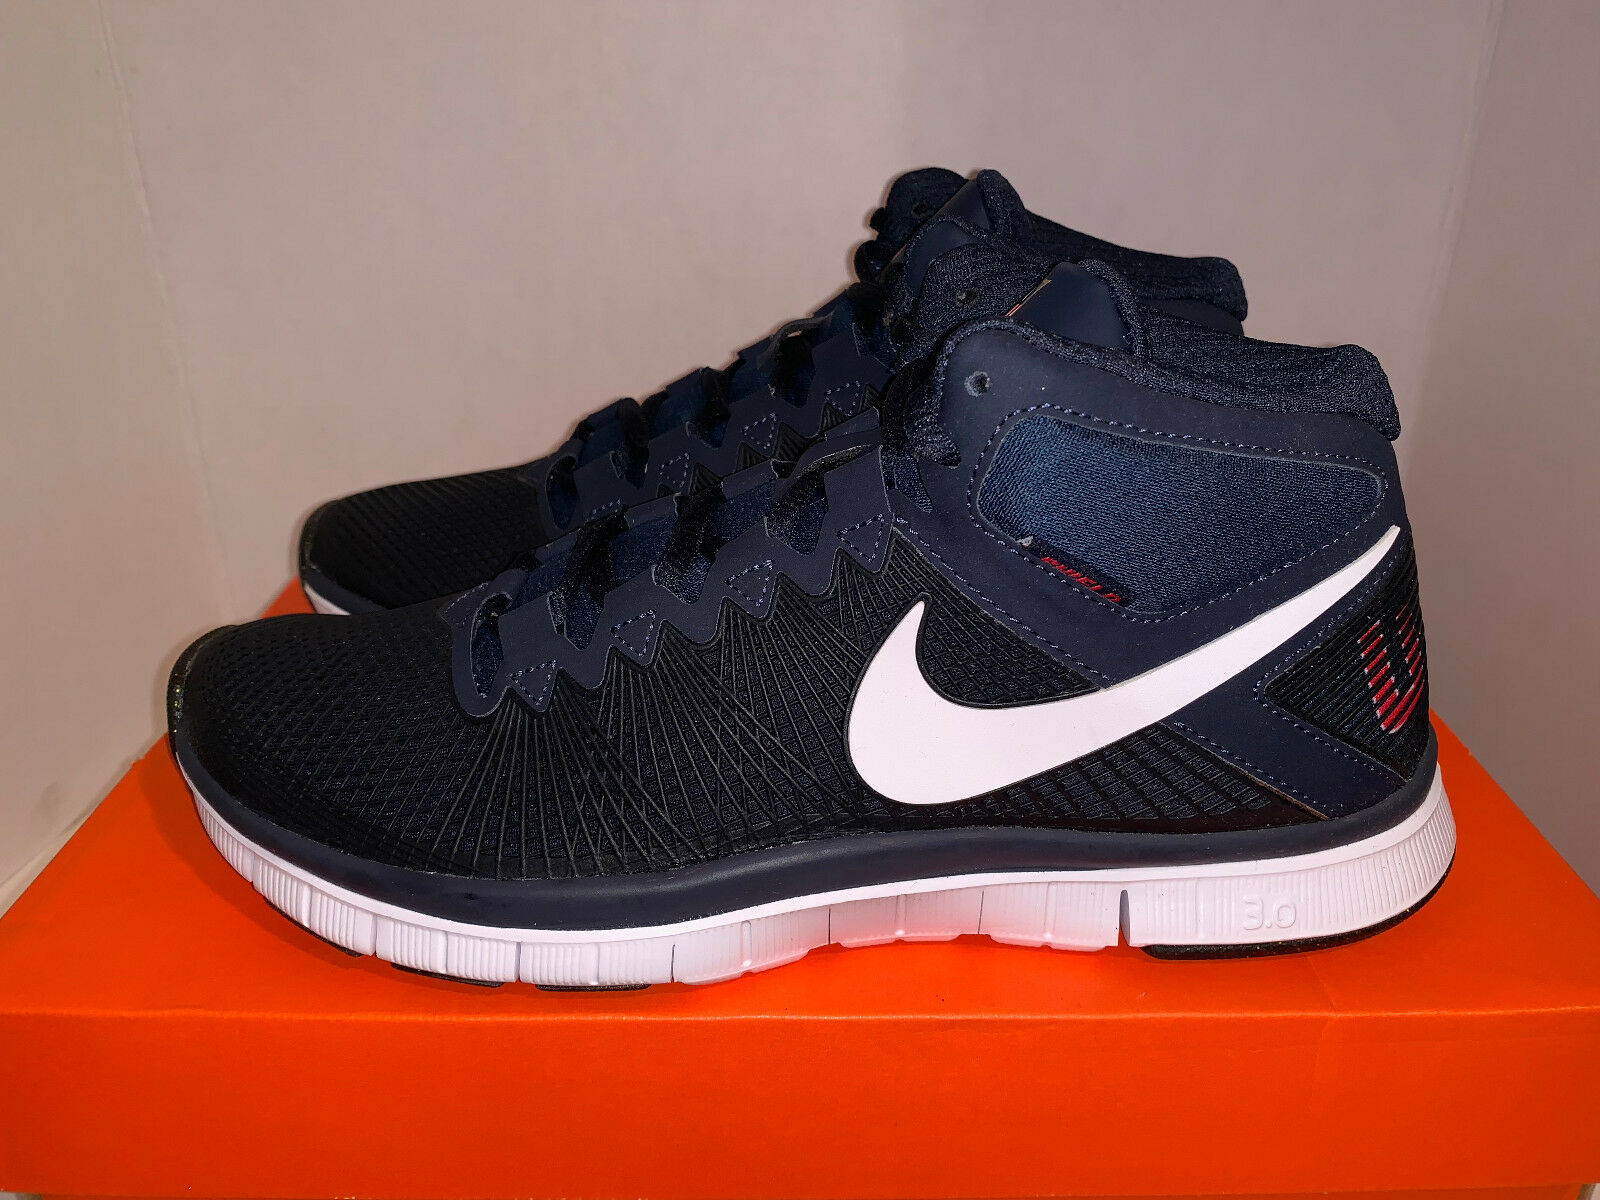 Nike Free Trainer Shield USA Men's Size 8 9.5 13 DS 616252